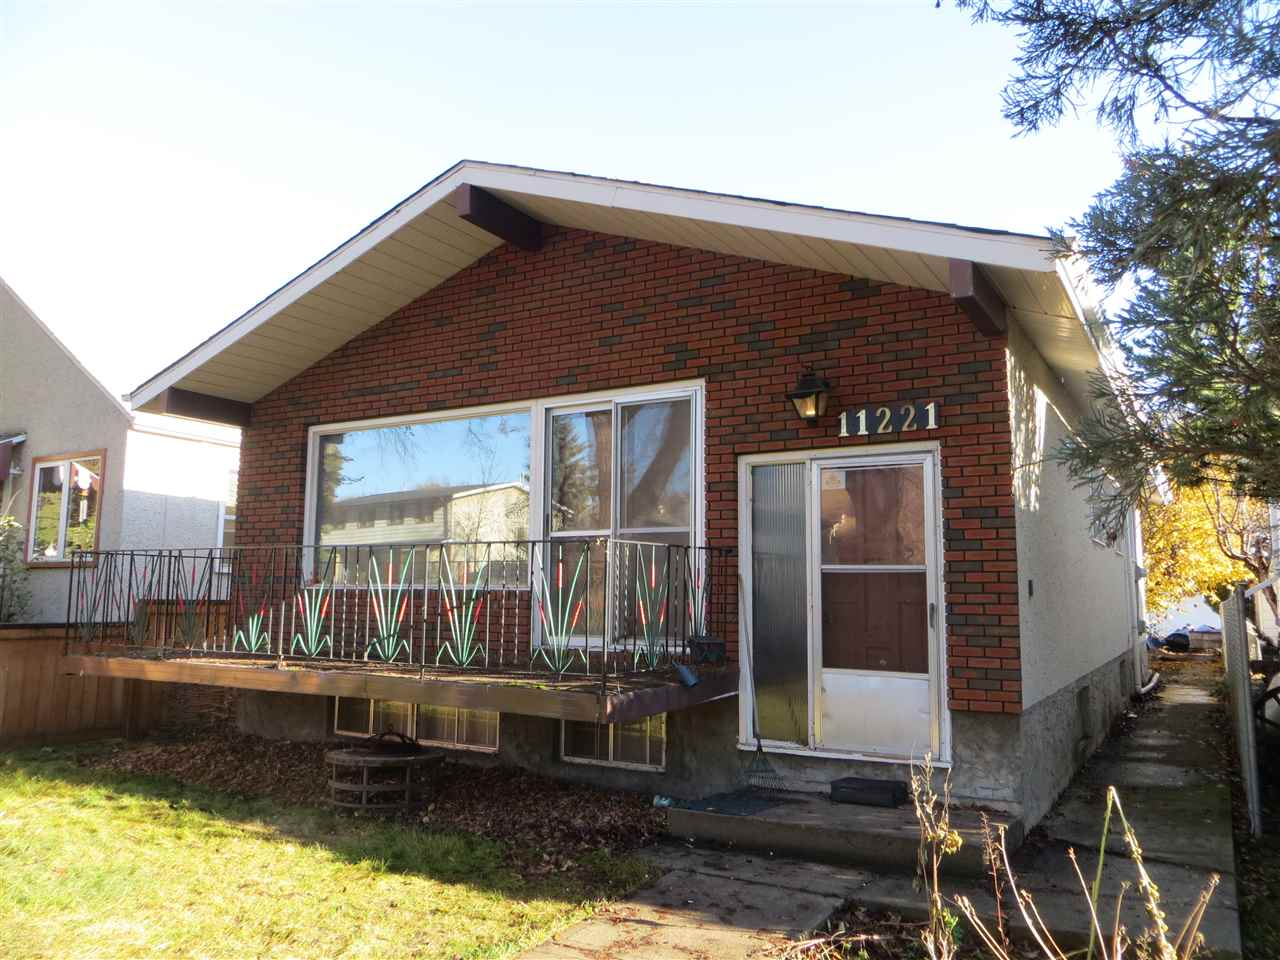 One block from Ada Blvd and the River valley!  Put some upgrades into this diamond in the rough. Expensive items have already been done like the 2 high efficient furnaces and hot water tank.  There is a separate entrance with roughed in plumbing in the unspoiled basement, so there could be suite potential with the separate furnaces as well.  This 1110 sq ft home was built in 1972 and has an open beam vaulted ceiling in the living room.  2 bedrooms upstairs plus 1.5 bathrooms.  The windows in the home maximize the natural light in this home.  There is also a double garage, but it does need work.  Prime location with other infill homes on the block.